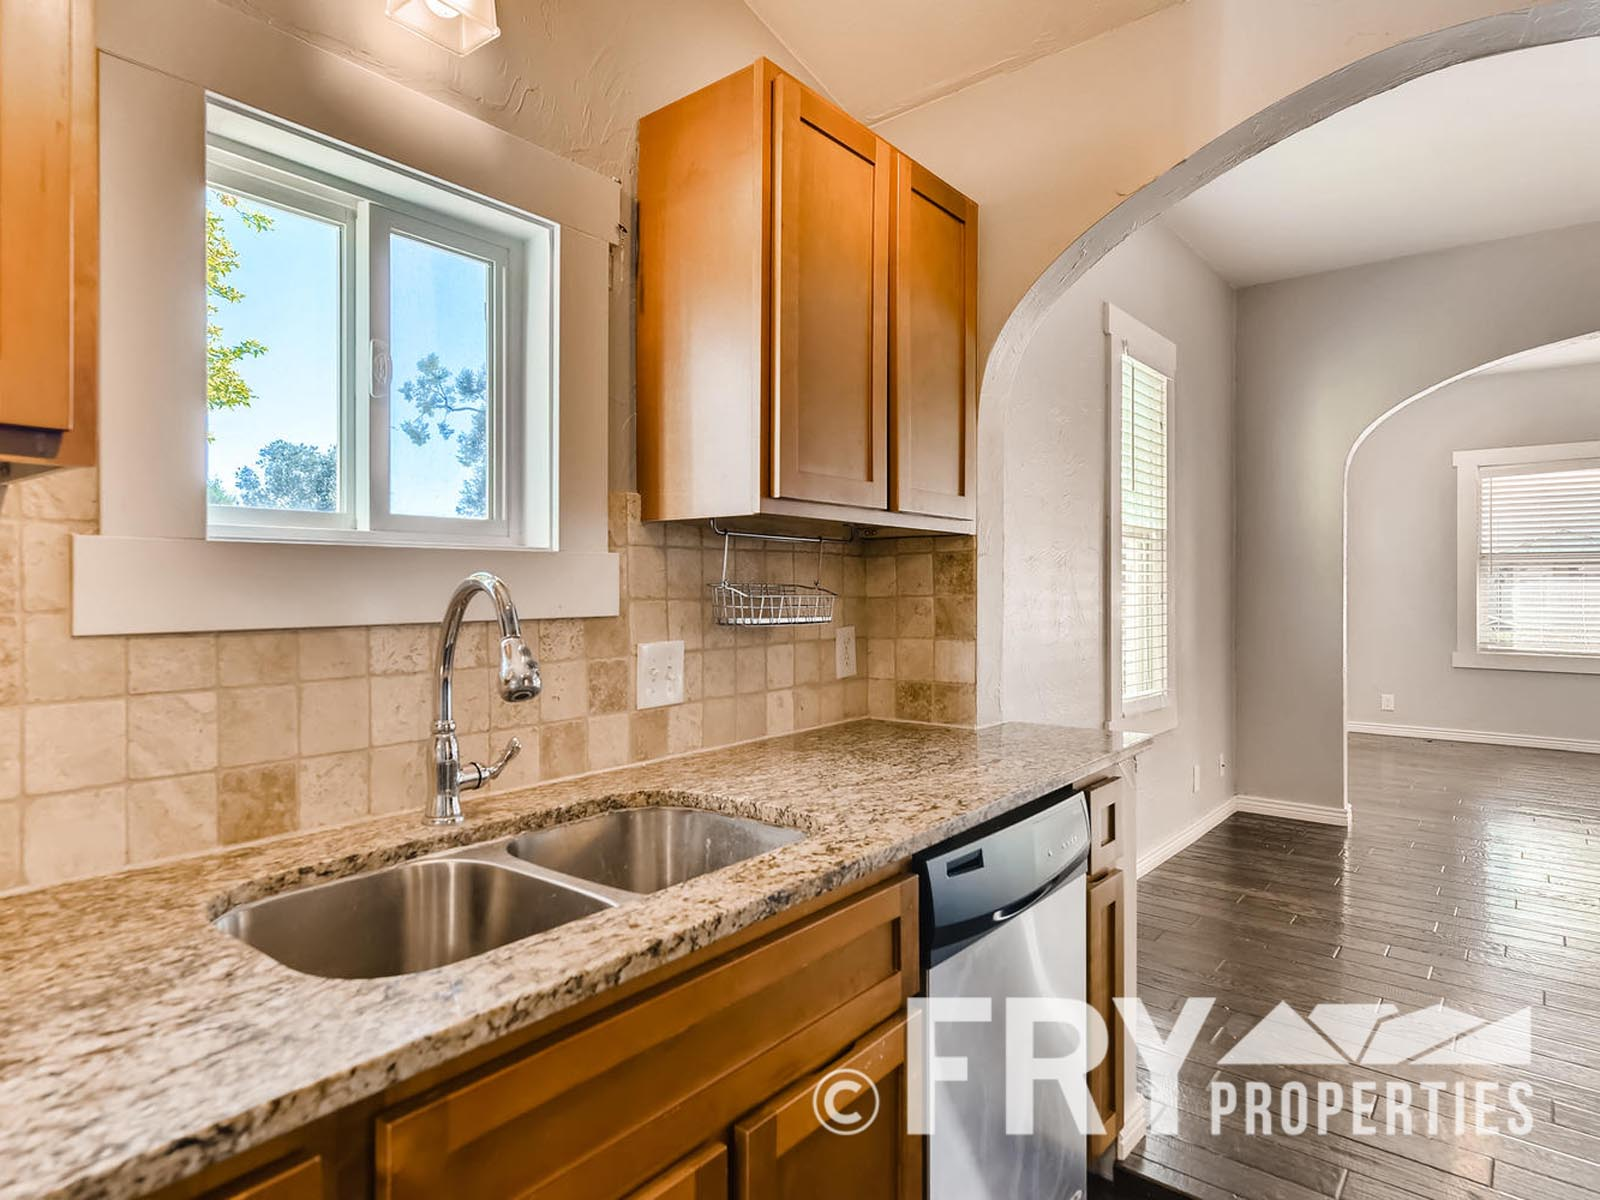 2808 S Delaware Street-large-012-20-Kitchen-1499x1000-72dpi